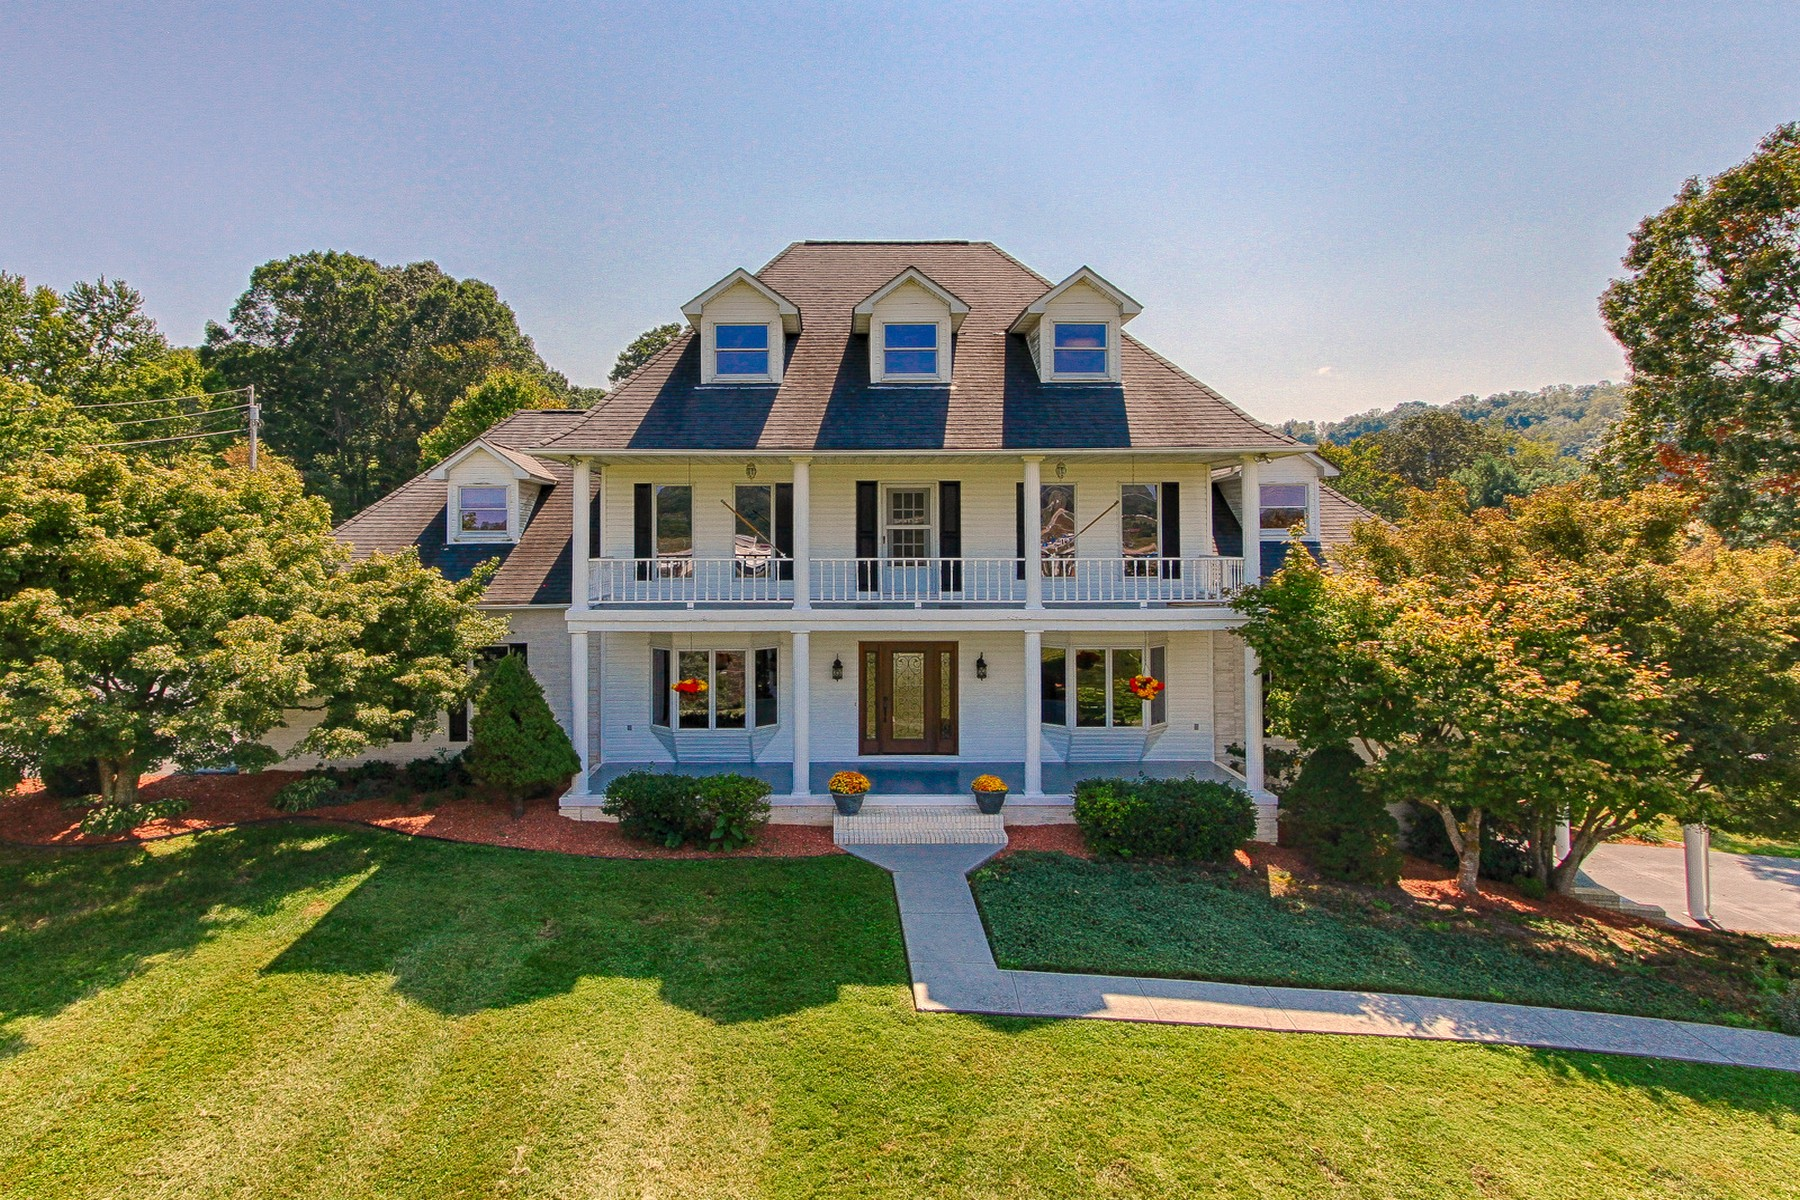 Single Family Home for Sale at Private 13+ Acre Estate 905 Old Highway 33 New Tazewell, Tennessee 37825 United States